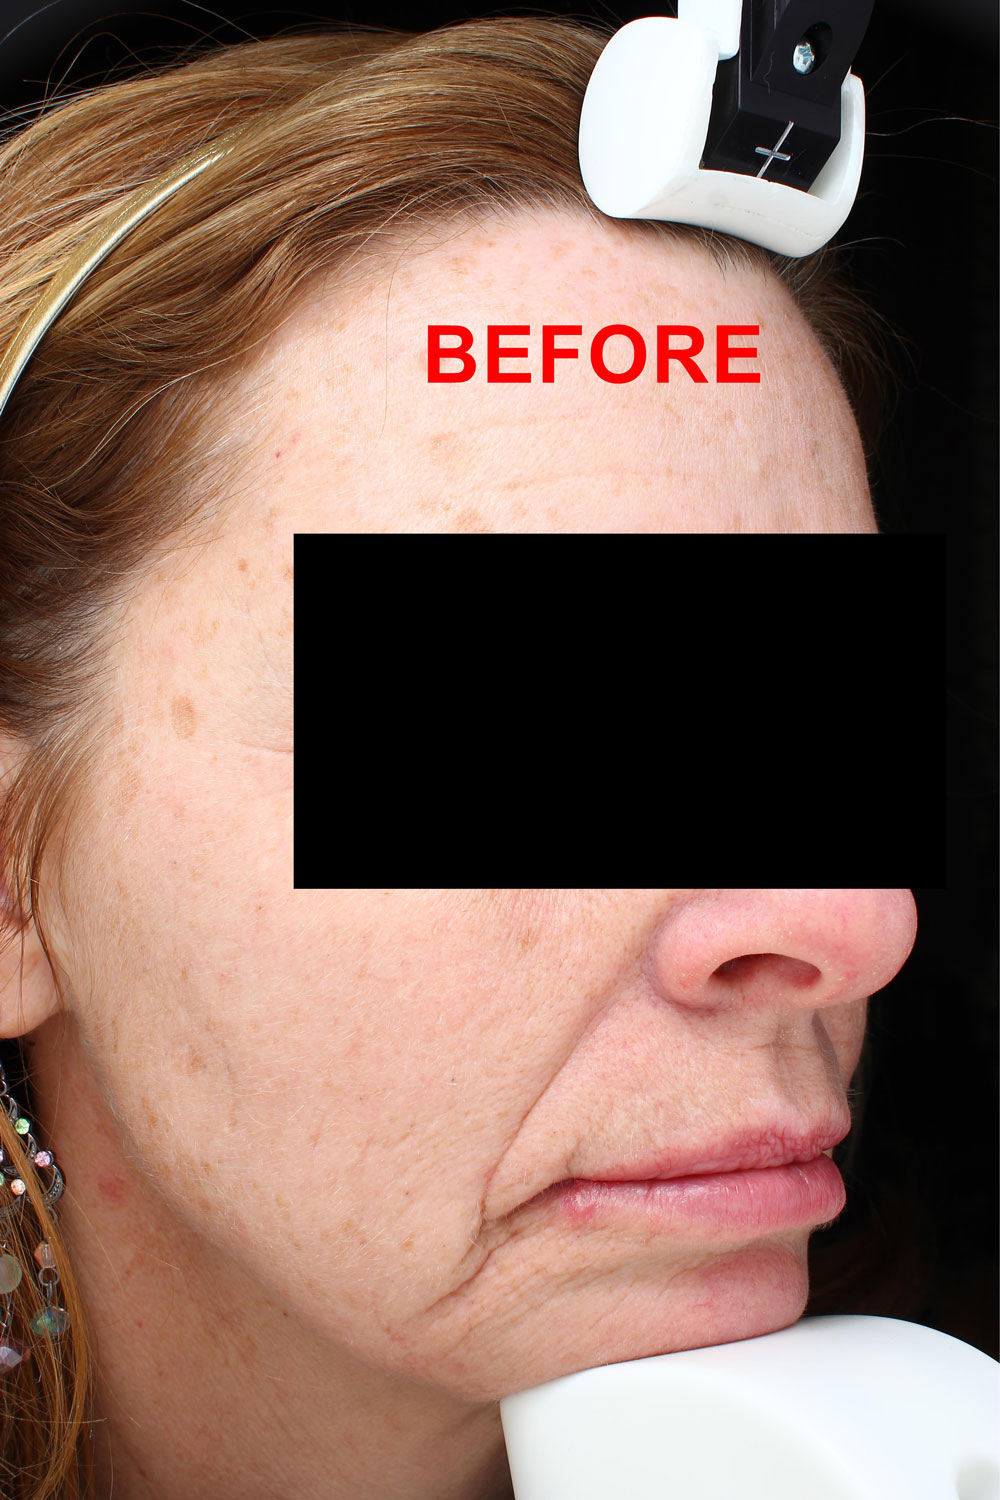 Face before from IPL and facial filler treatments before and after procedure provided by Dr. Scott Hernberg of Tomorrow's Wellness Center, NJ's premier med spa.